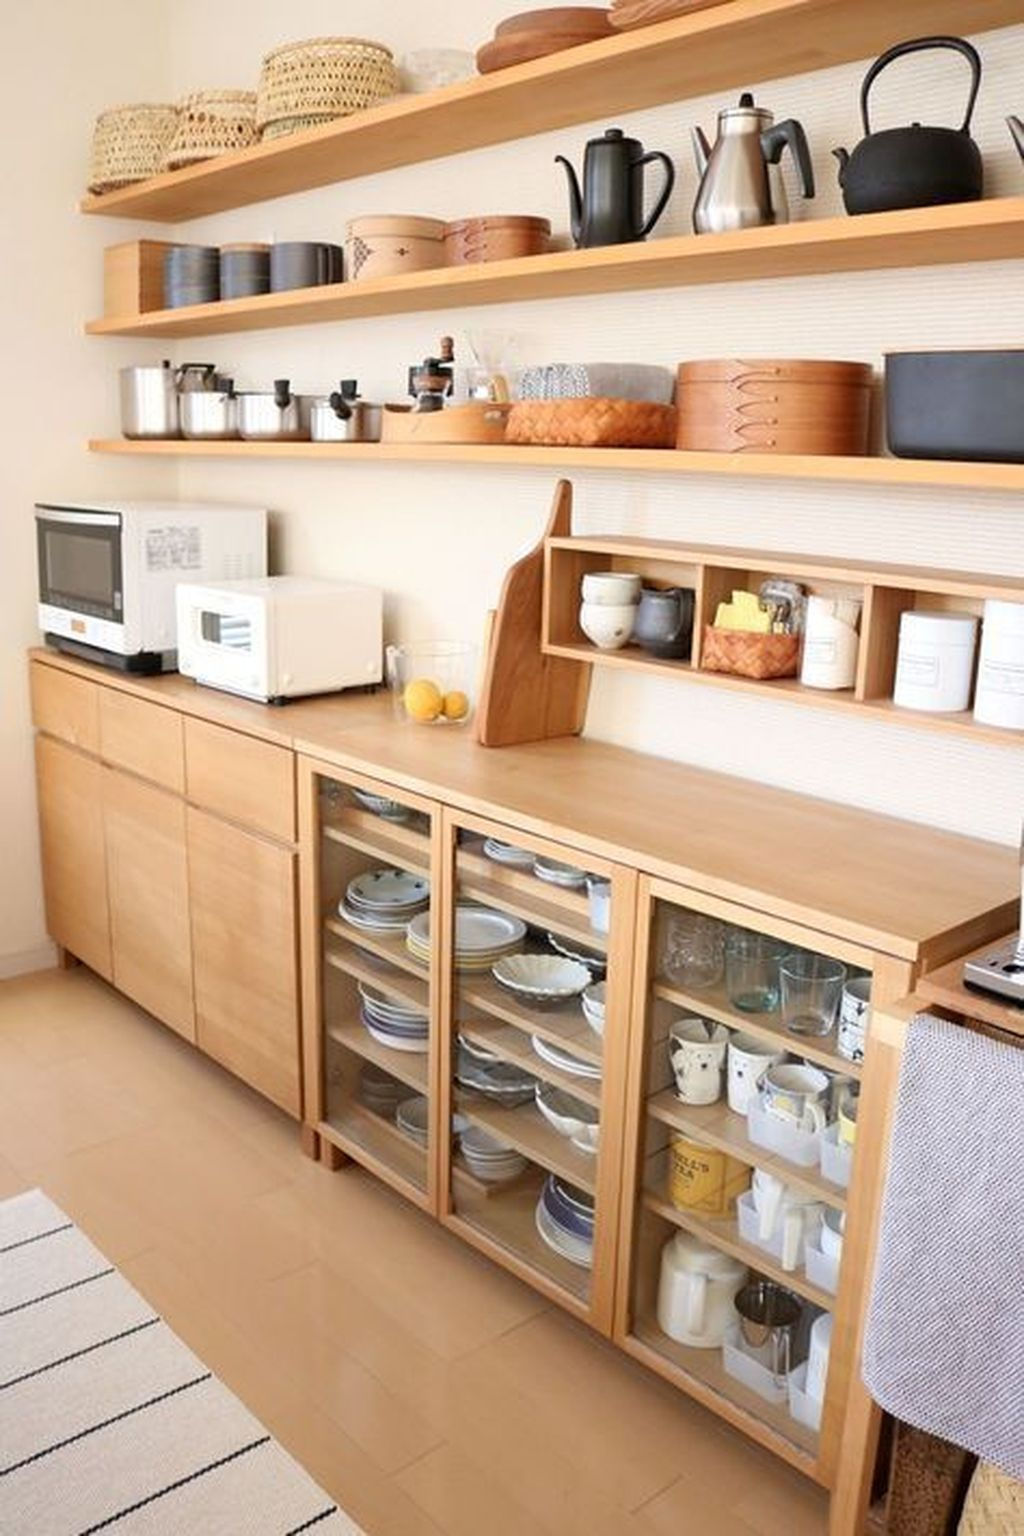 these 5 japanese kitchen ideas will improve your live in 2020 with images rustic kitchen on kitchen organization japanese id=29849